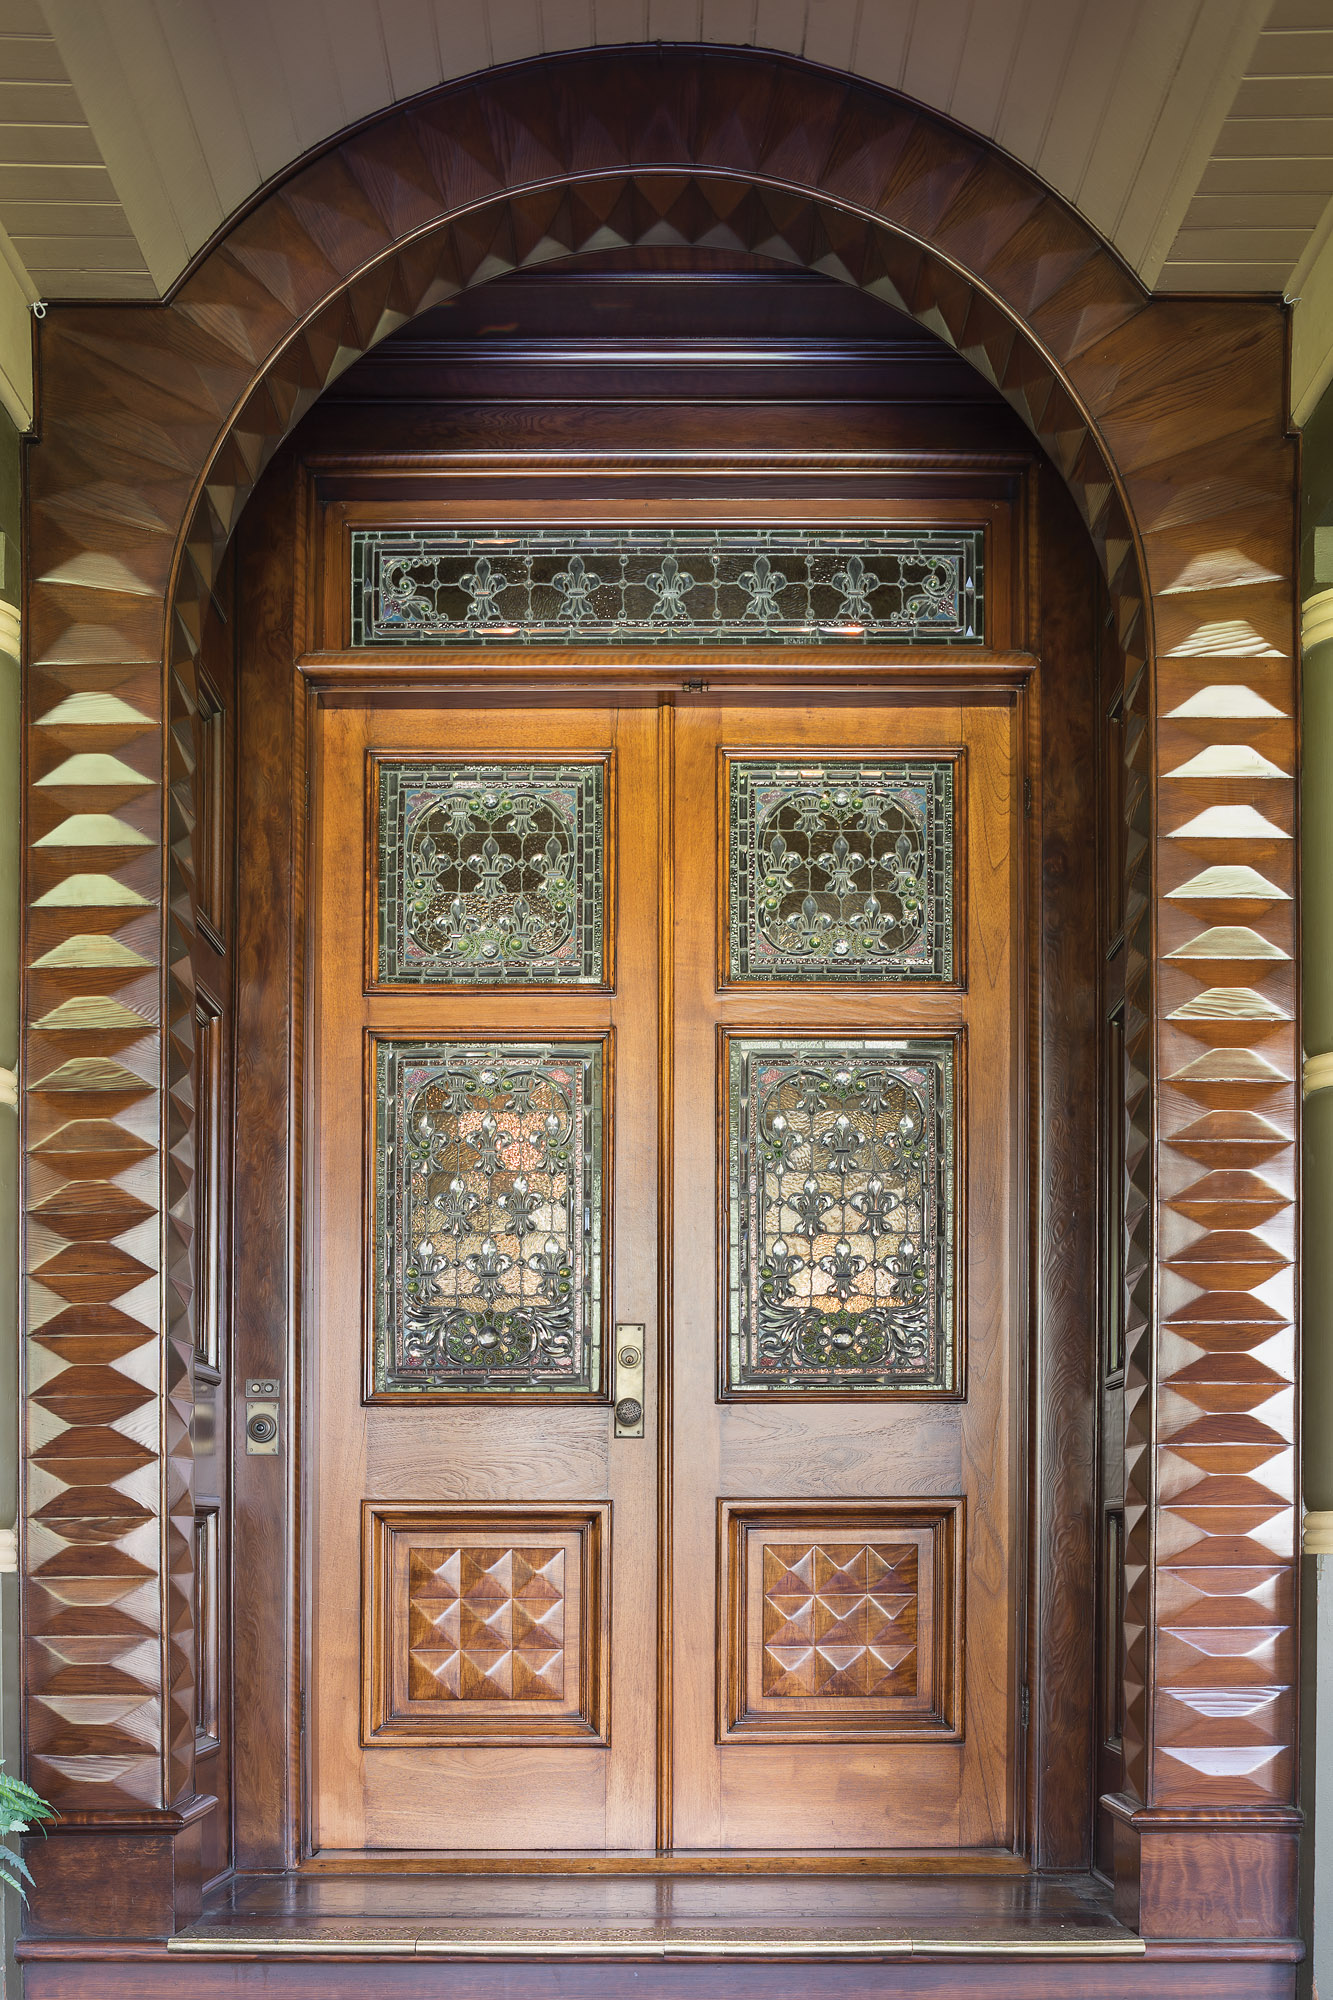 With ornate beveled glass, the front door is a tour de force set within a carved redwood archway.